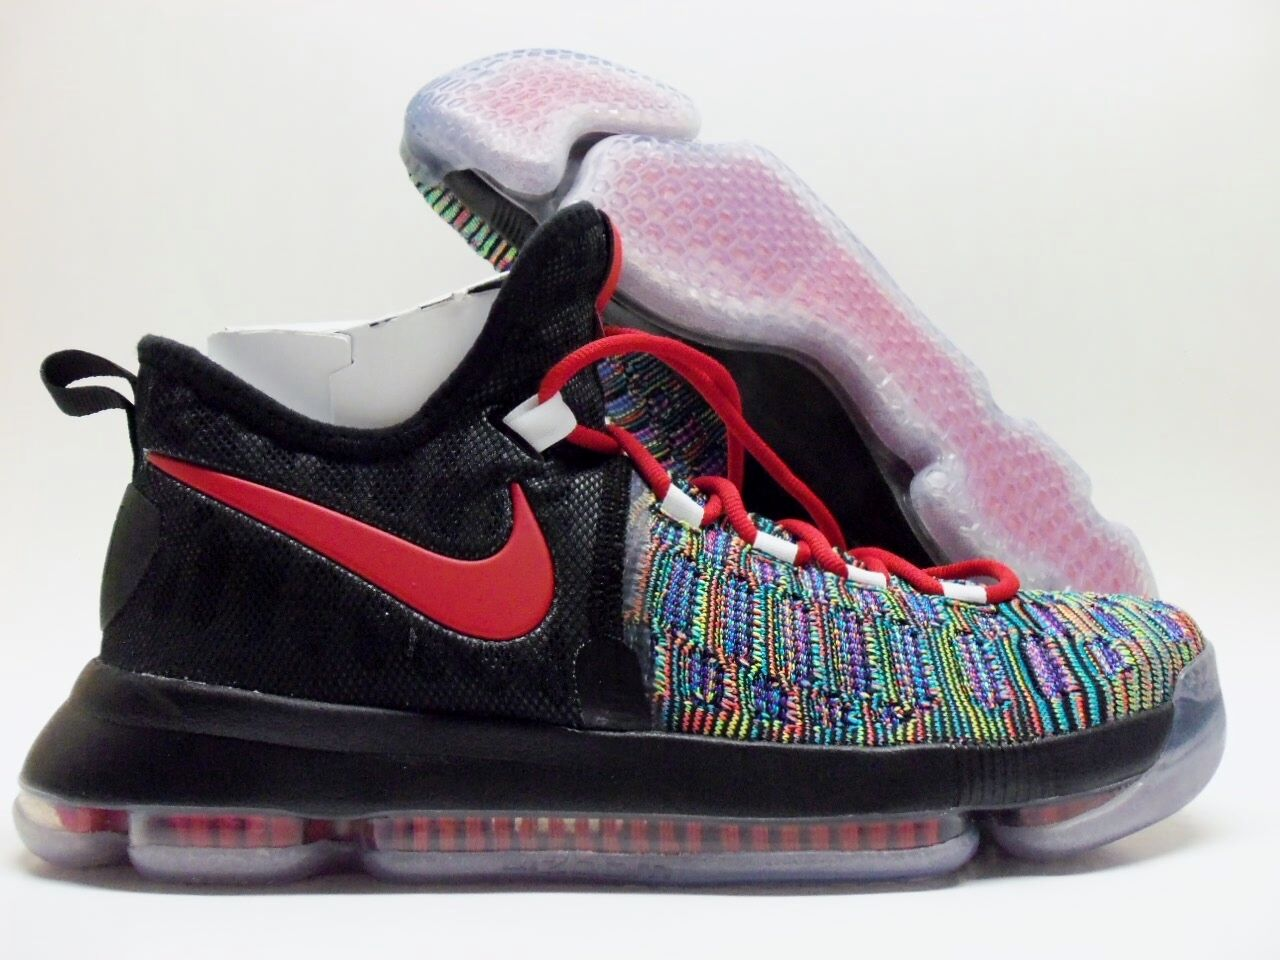 Nike kd 9 ix id kevin durant multi-color / nero-red dimensioni uomini [863695-999]